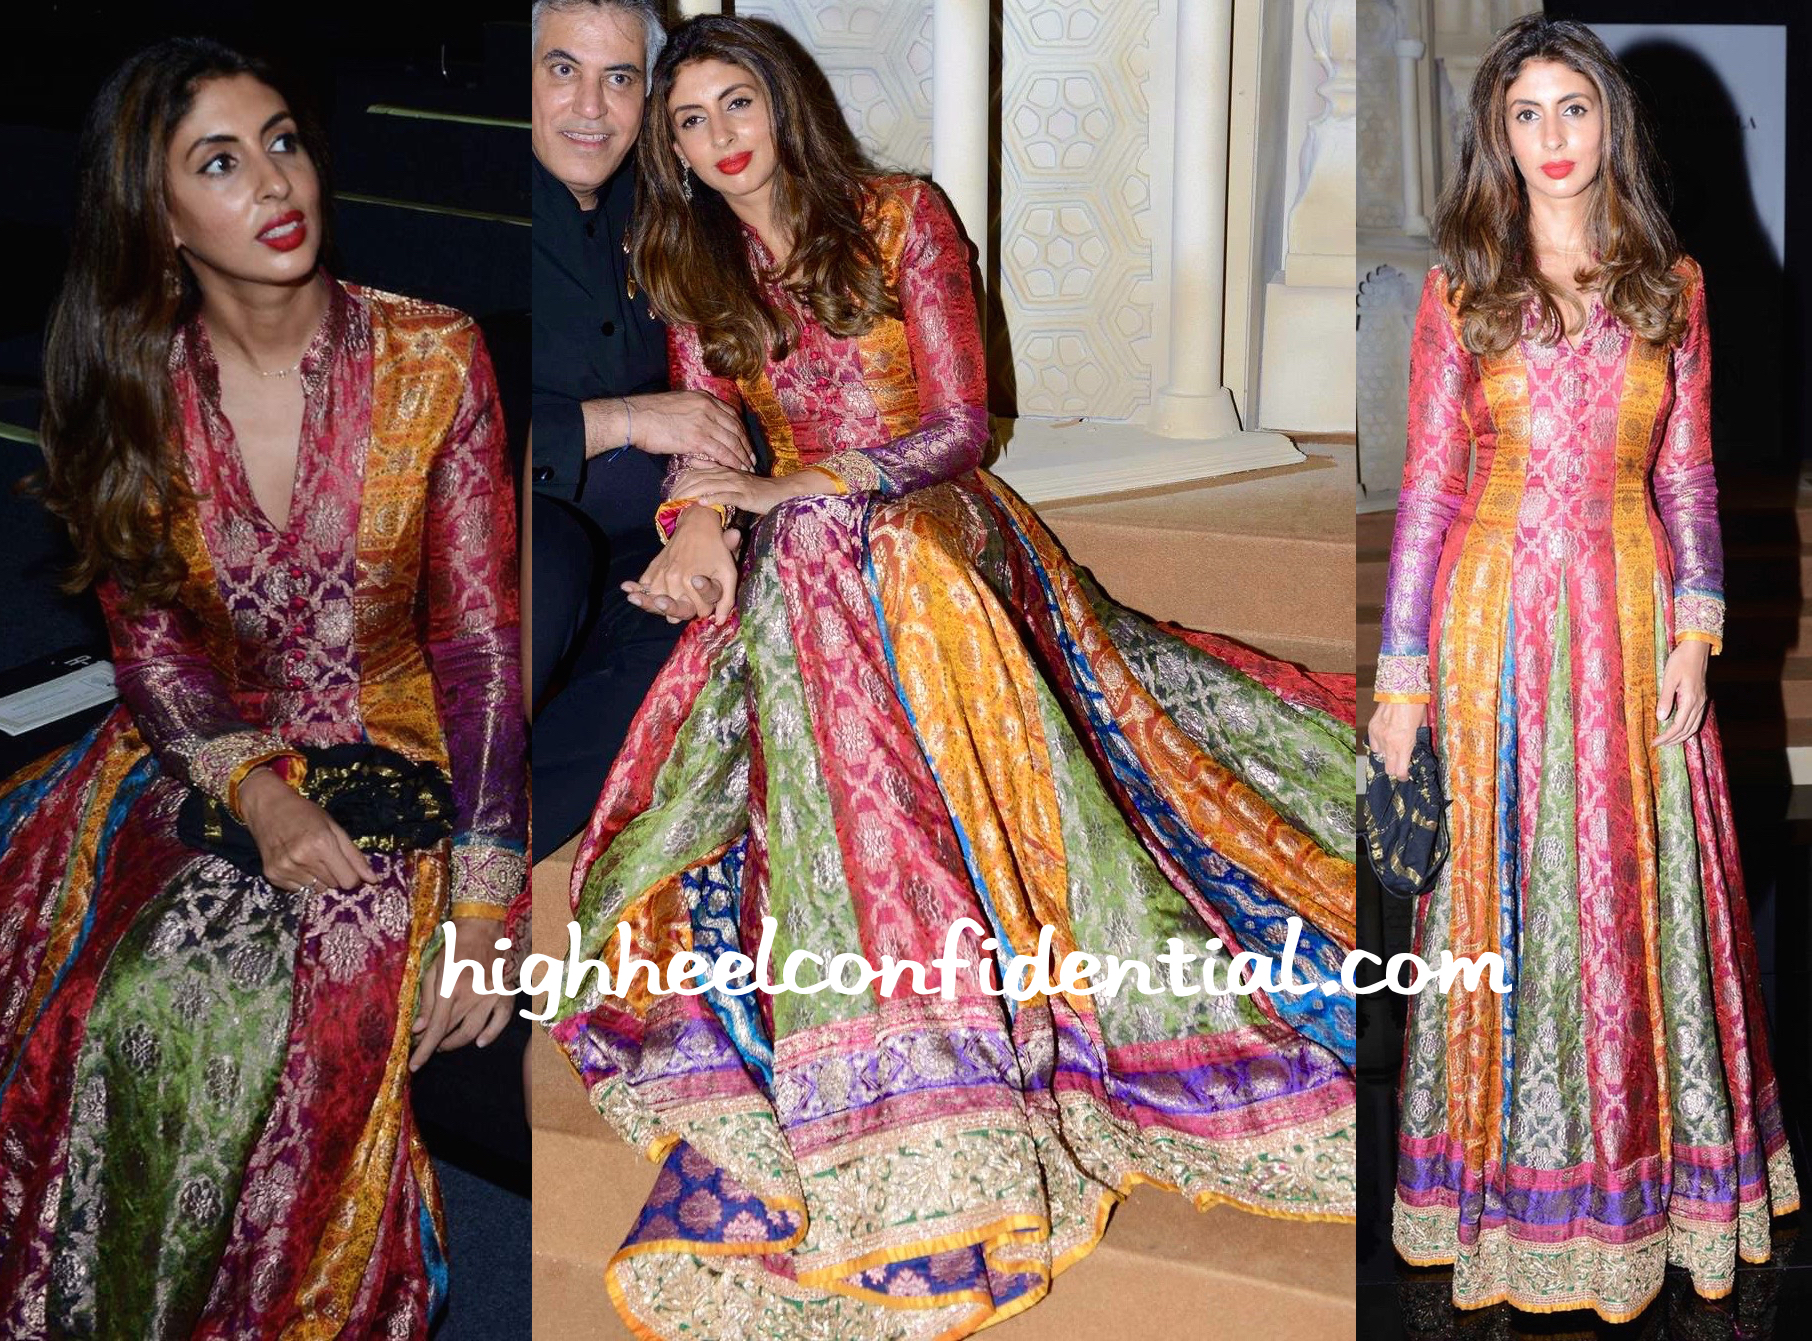 Shweta Bachchan Nanda Wears Abu Jani Sandeep Khosla To The Designer Duo S Show At India Bridal Fashion Week 2015 2 High Heel Confidential